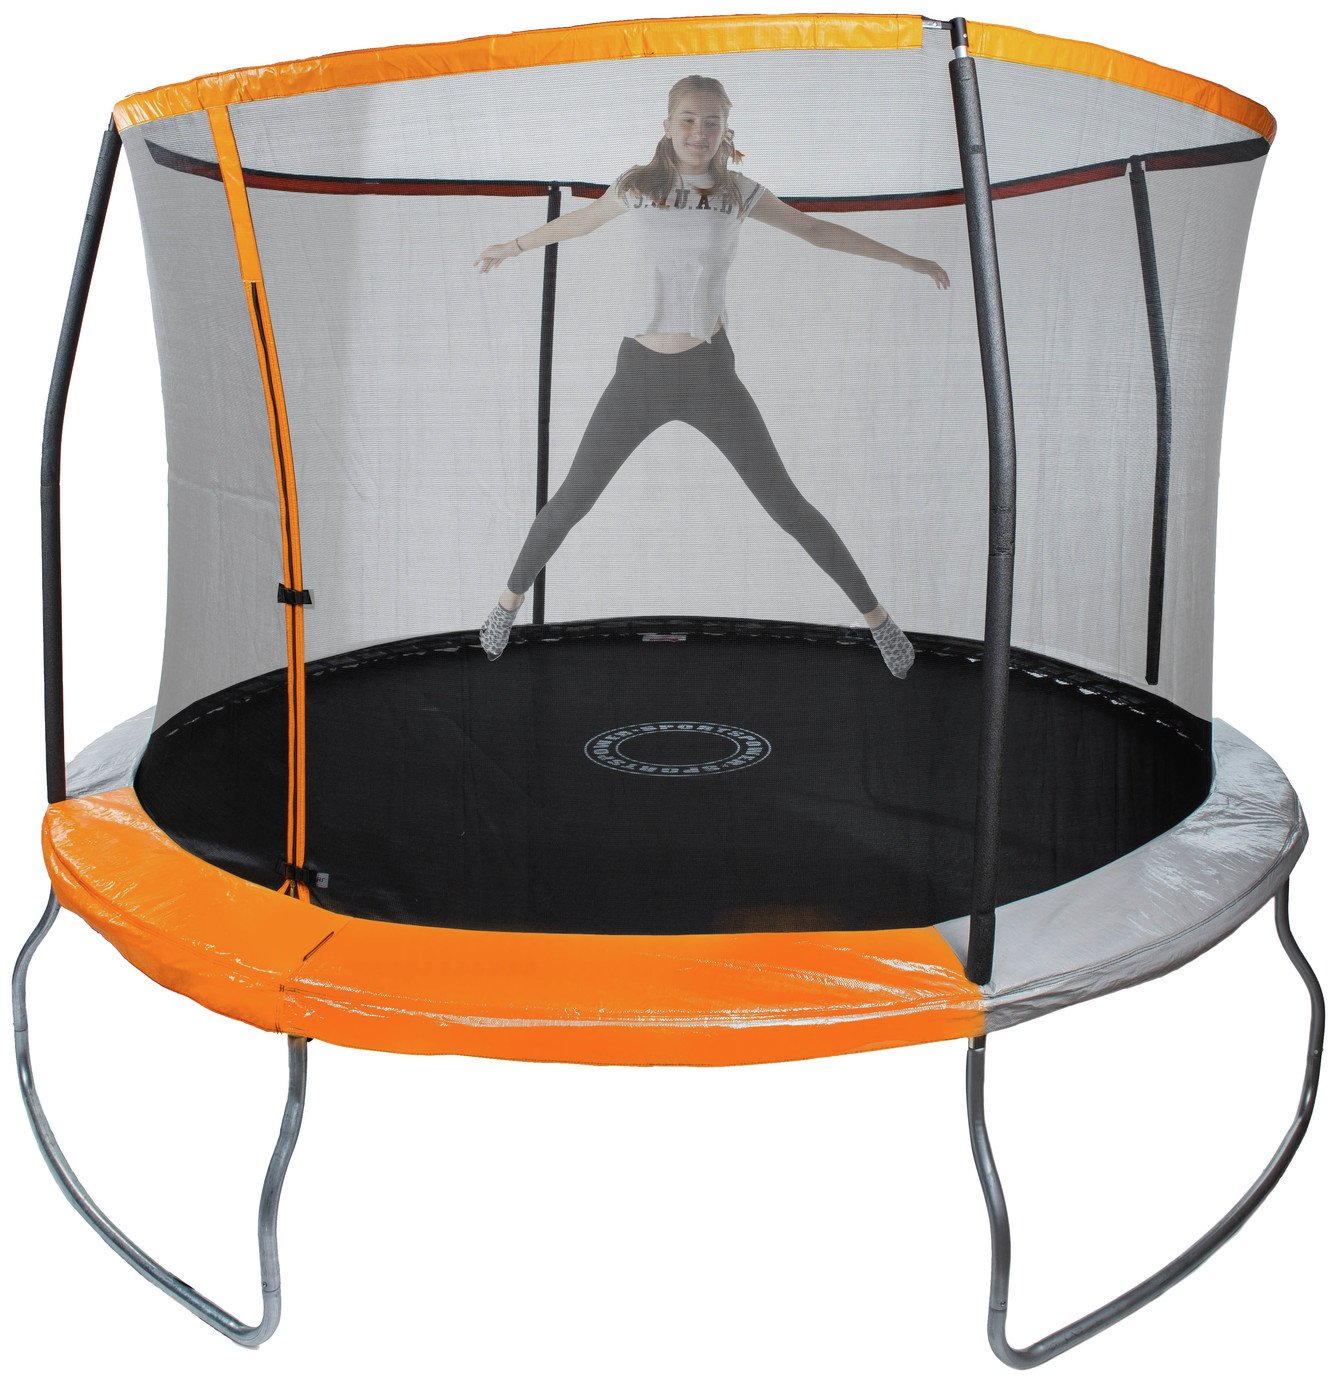 Sportspower 10ft Trampoline with Folding Enclosure